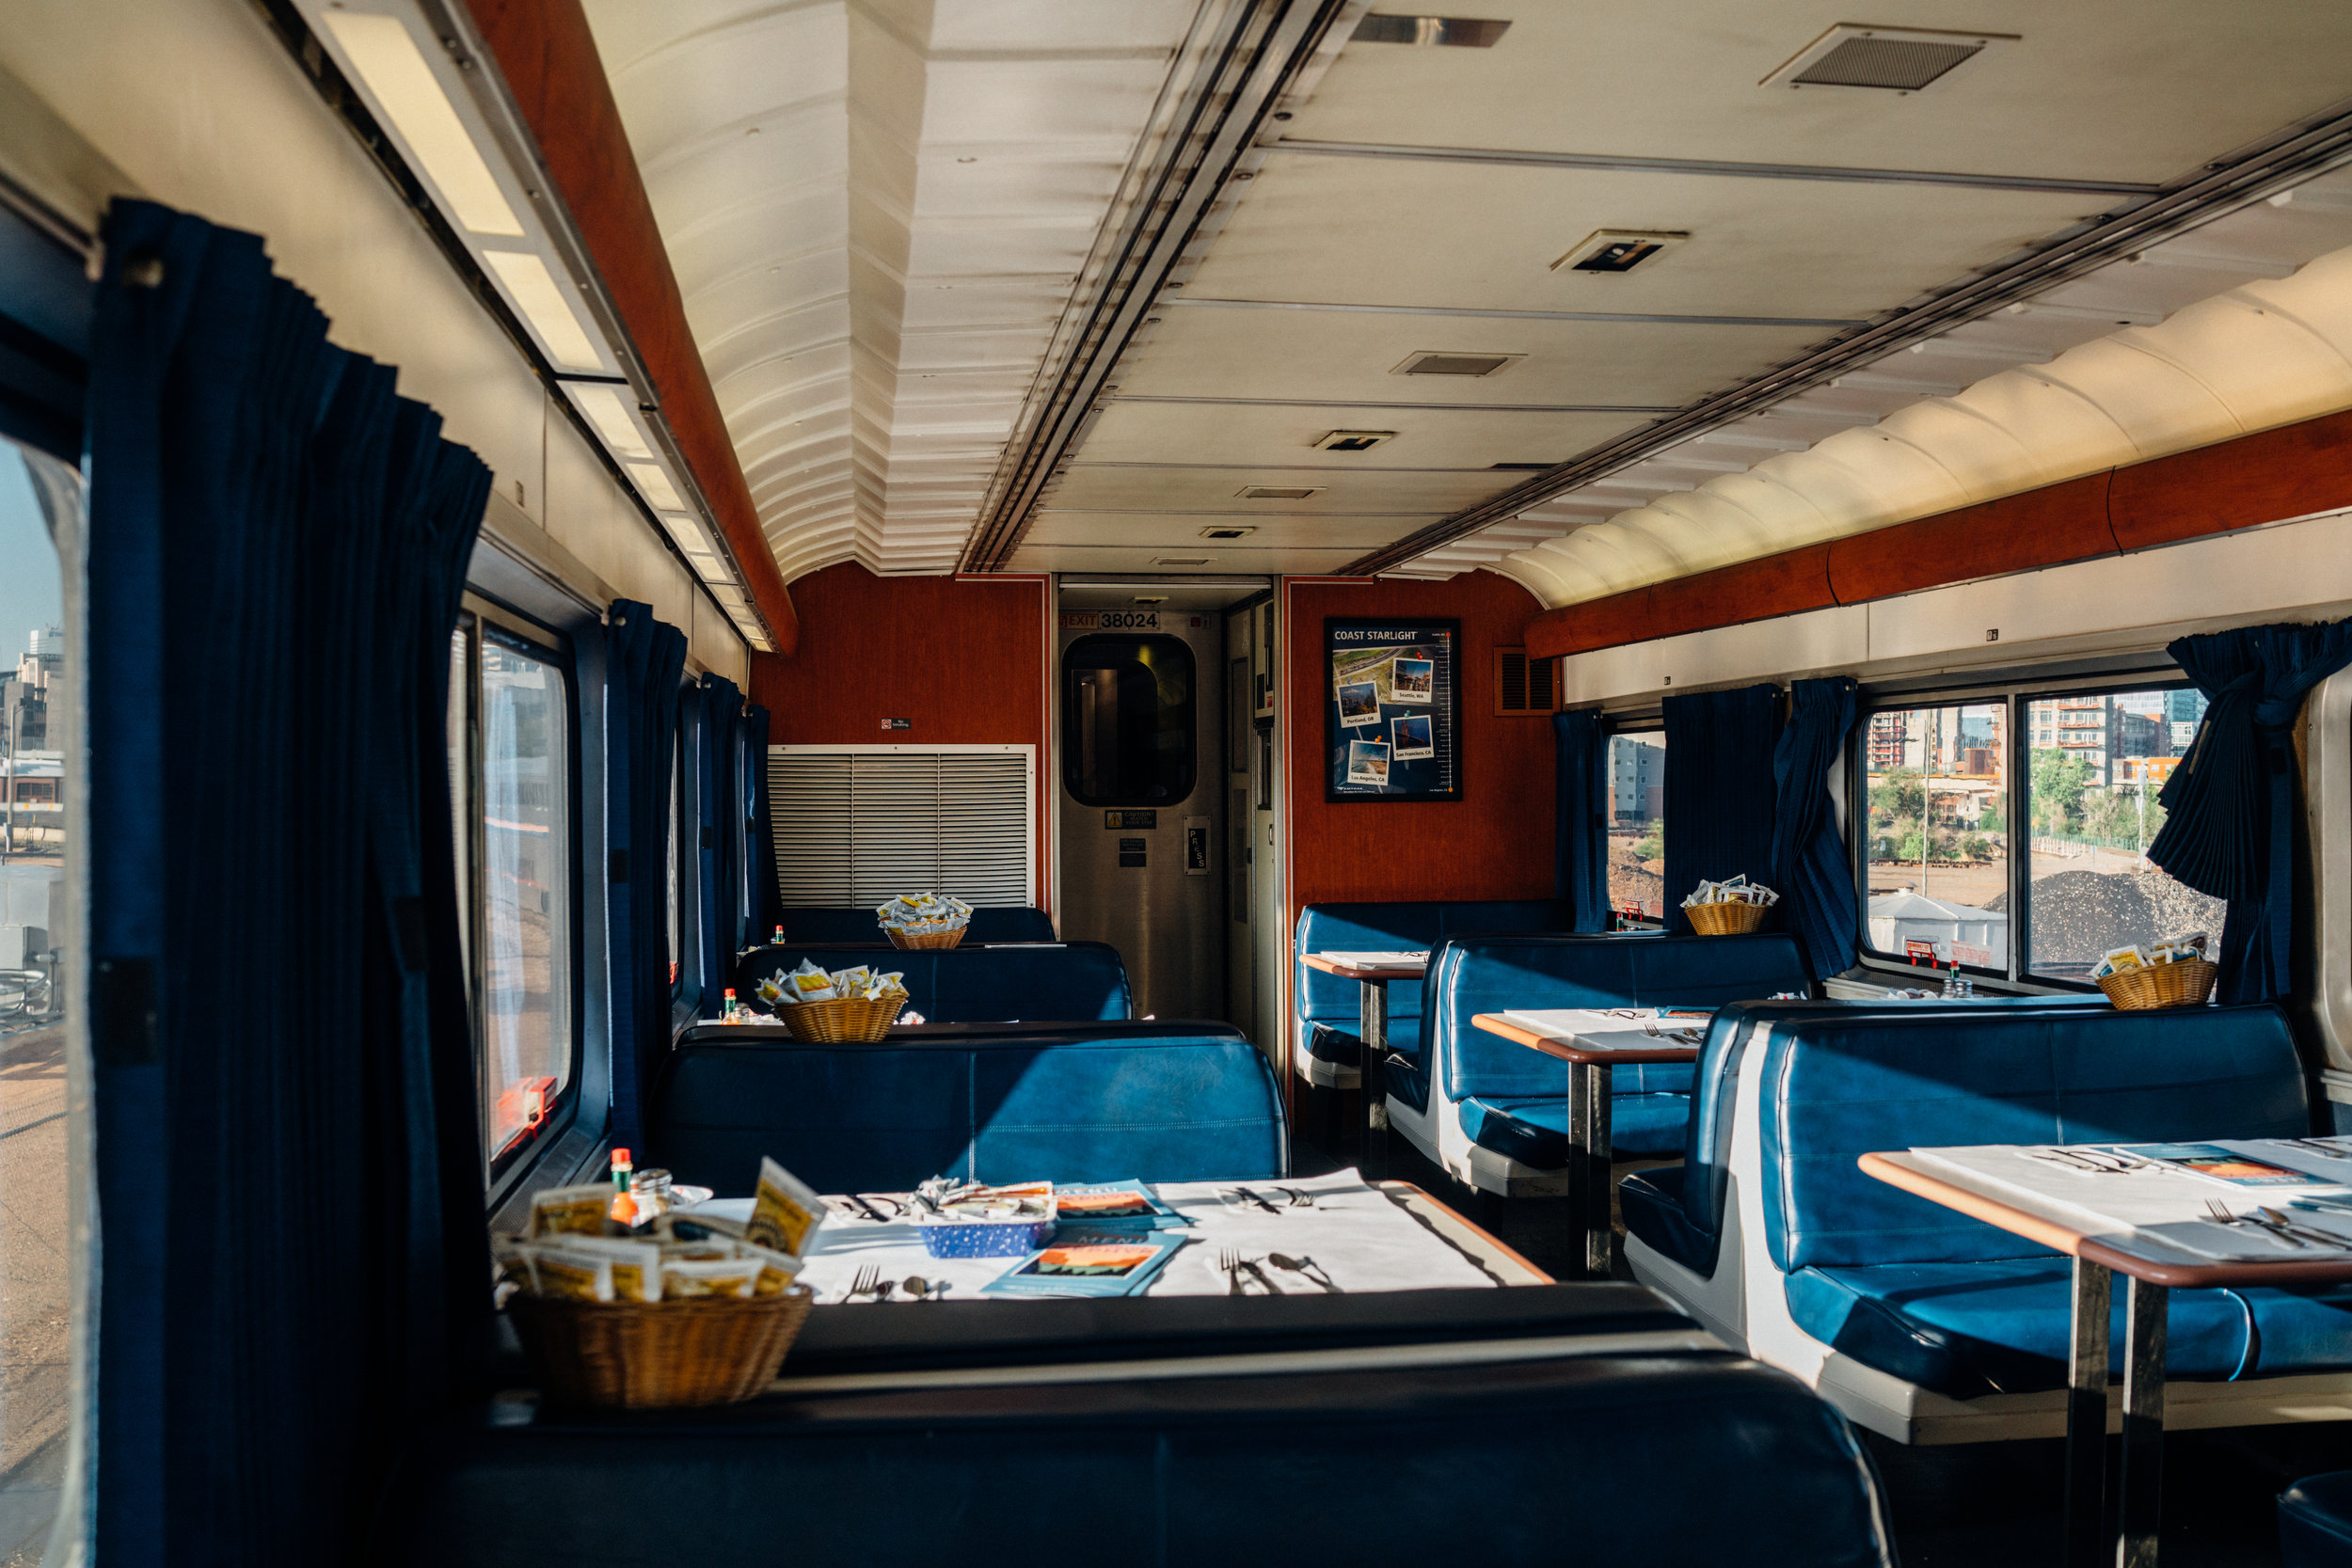 The dining car ready for breakfast